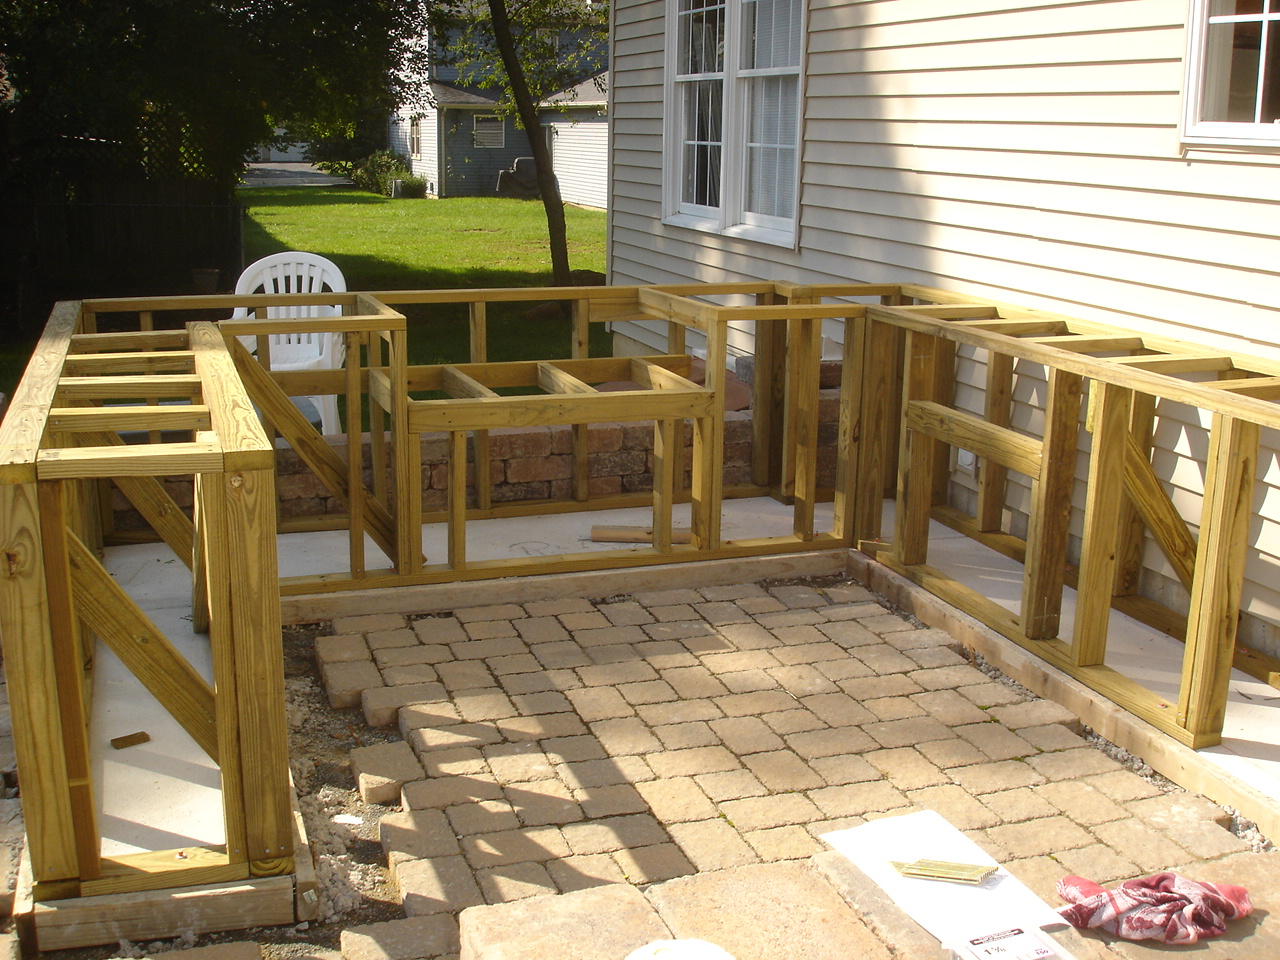 Outdoor Grilling Bar Construction : Nj home improvement outdoor bar and grill